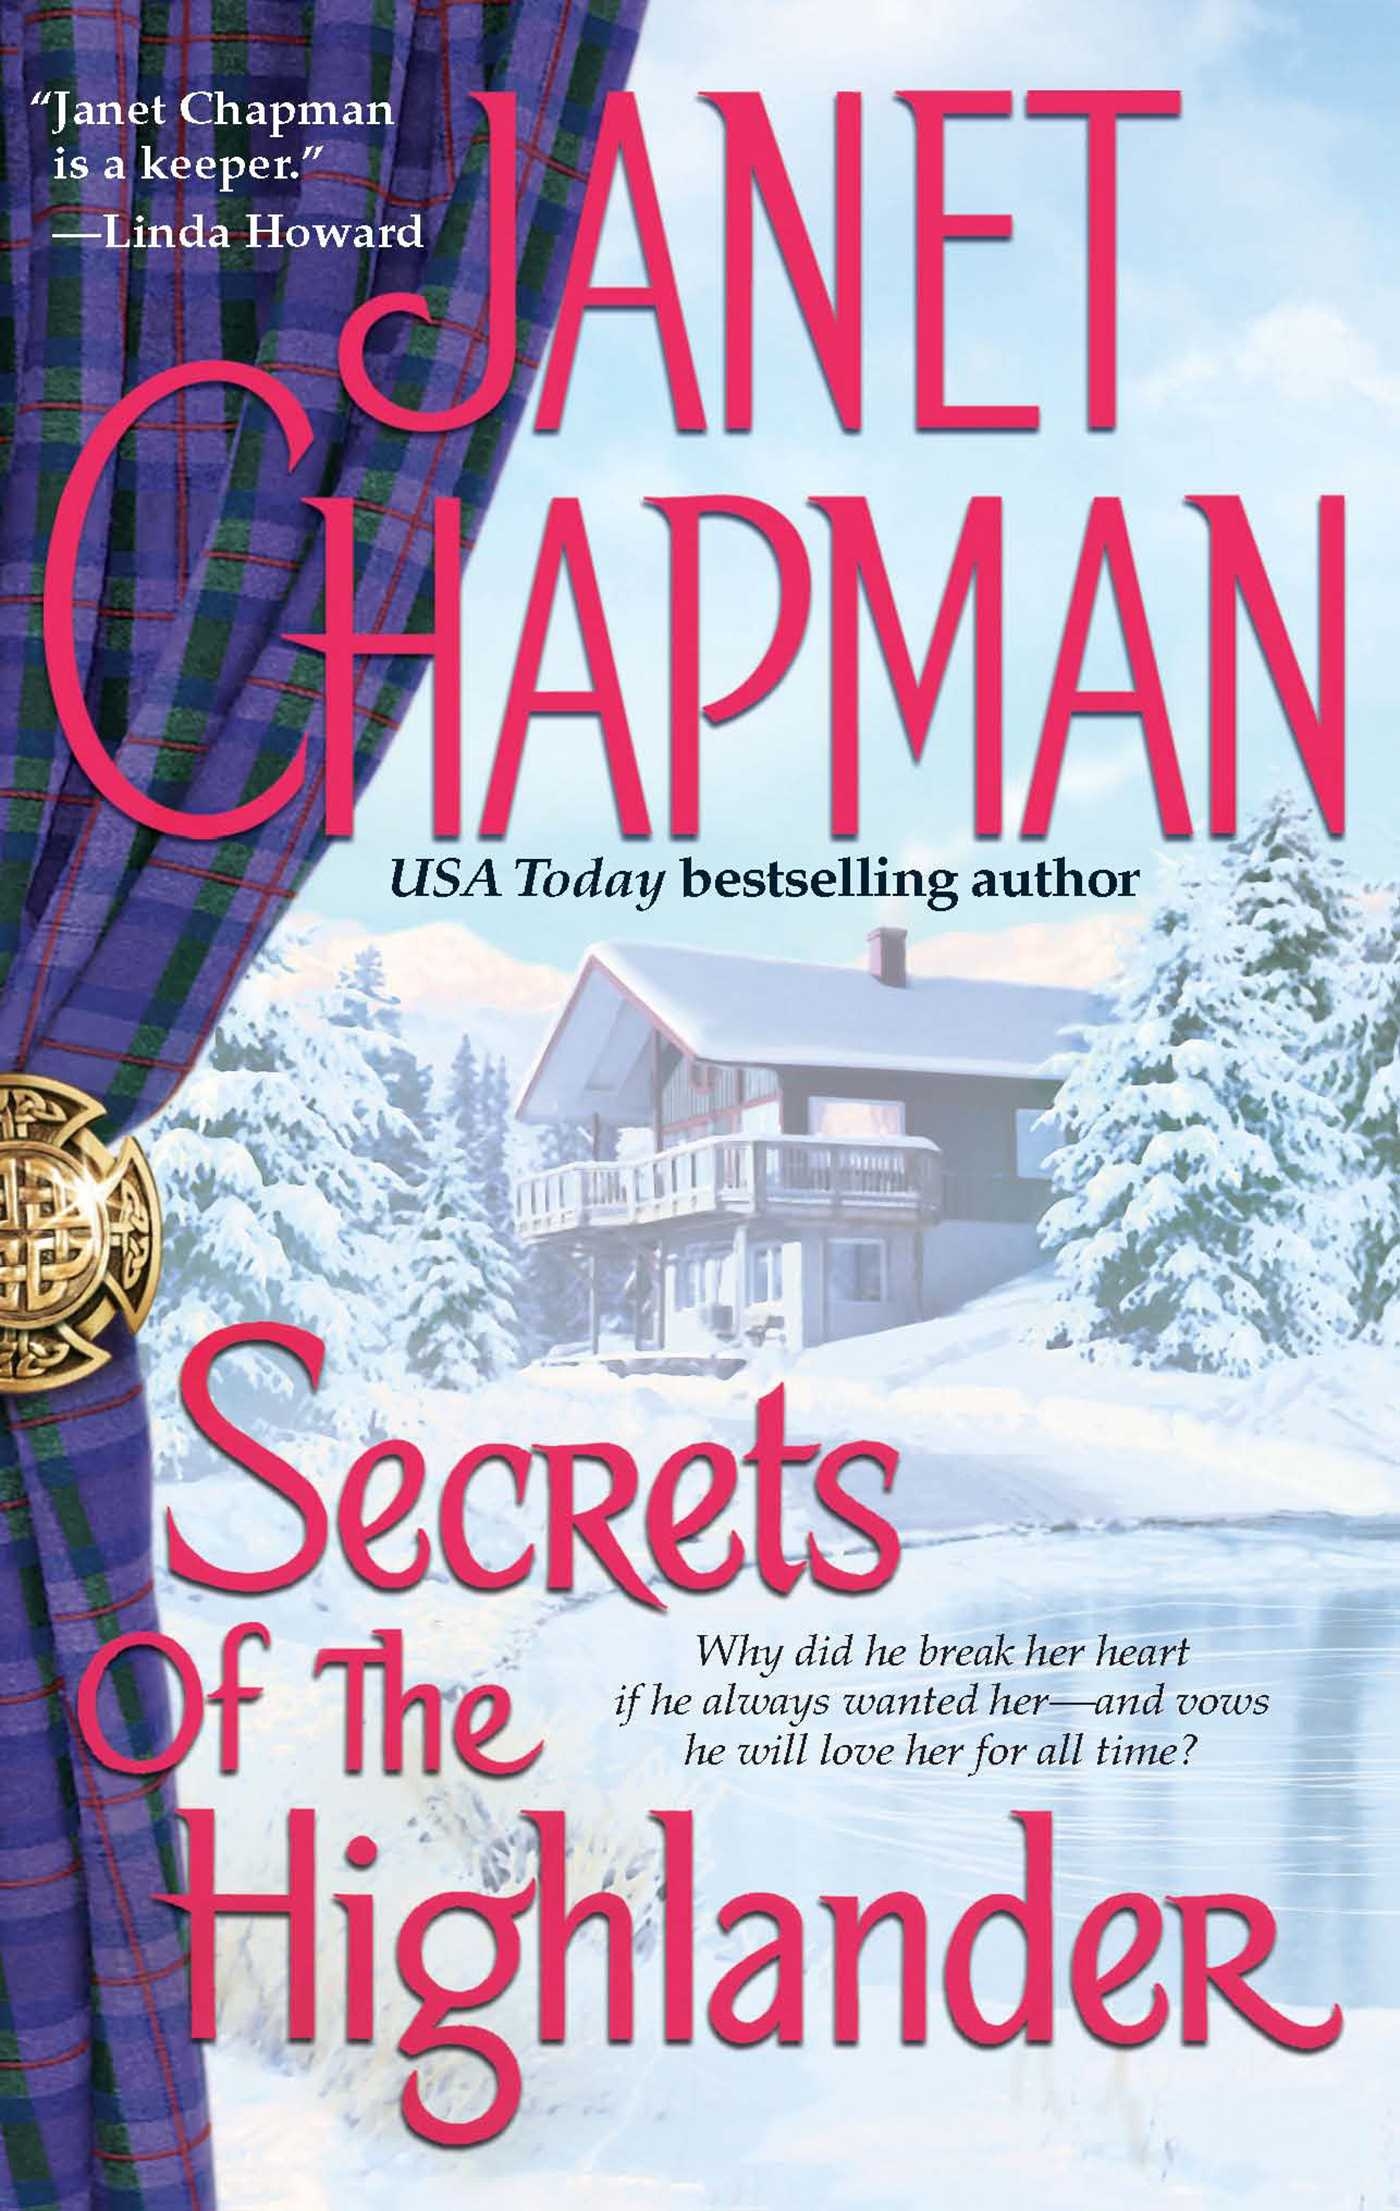 Secrets-of-the-highlander-9781416545217_hr